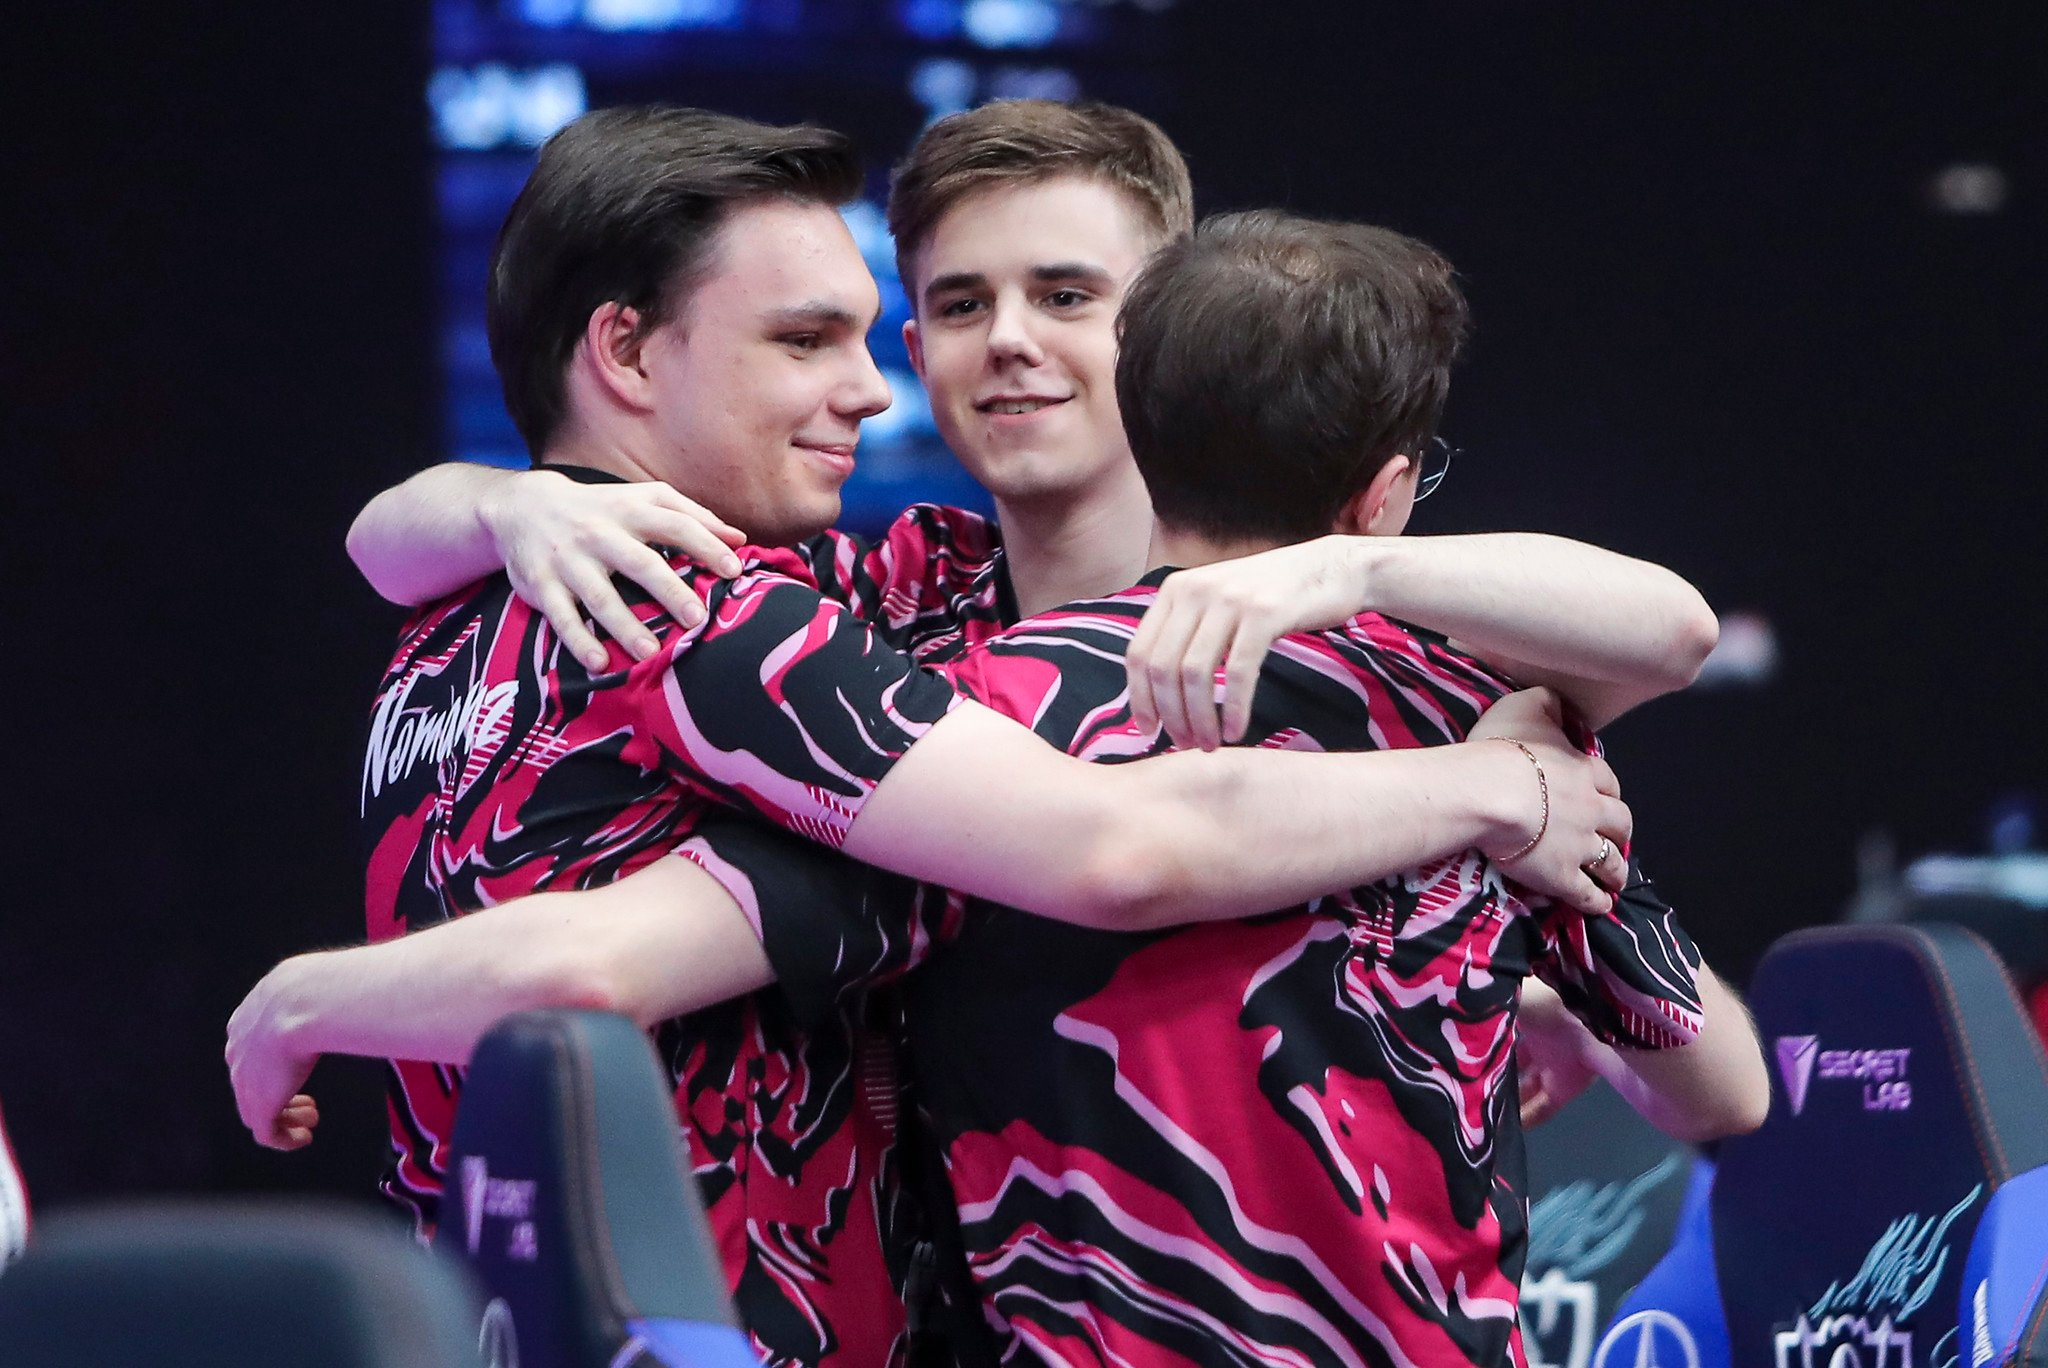 League Of Legends World Championship 2020 Play-In Stage Day Six: Unicorns Of Love Vs SuperMassive